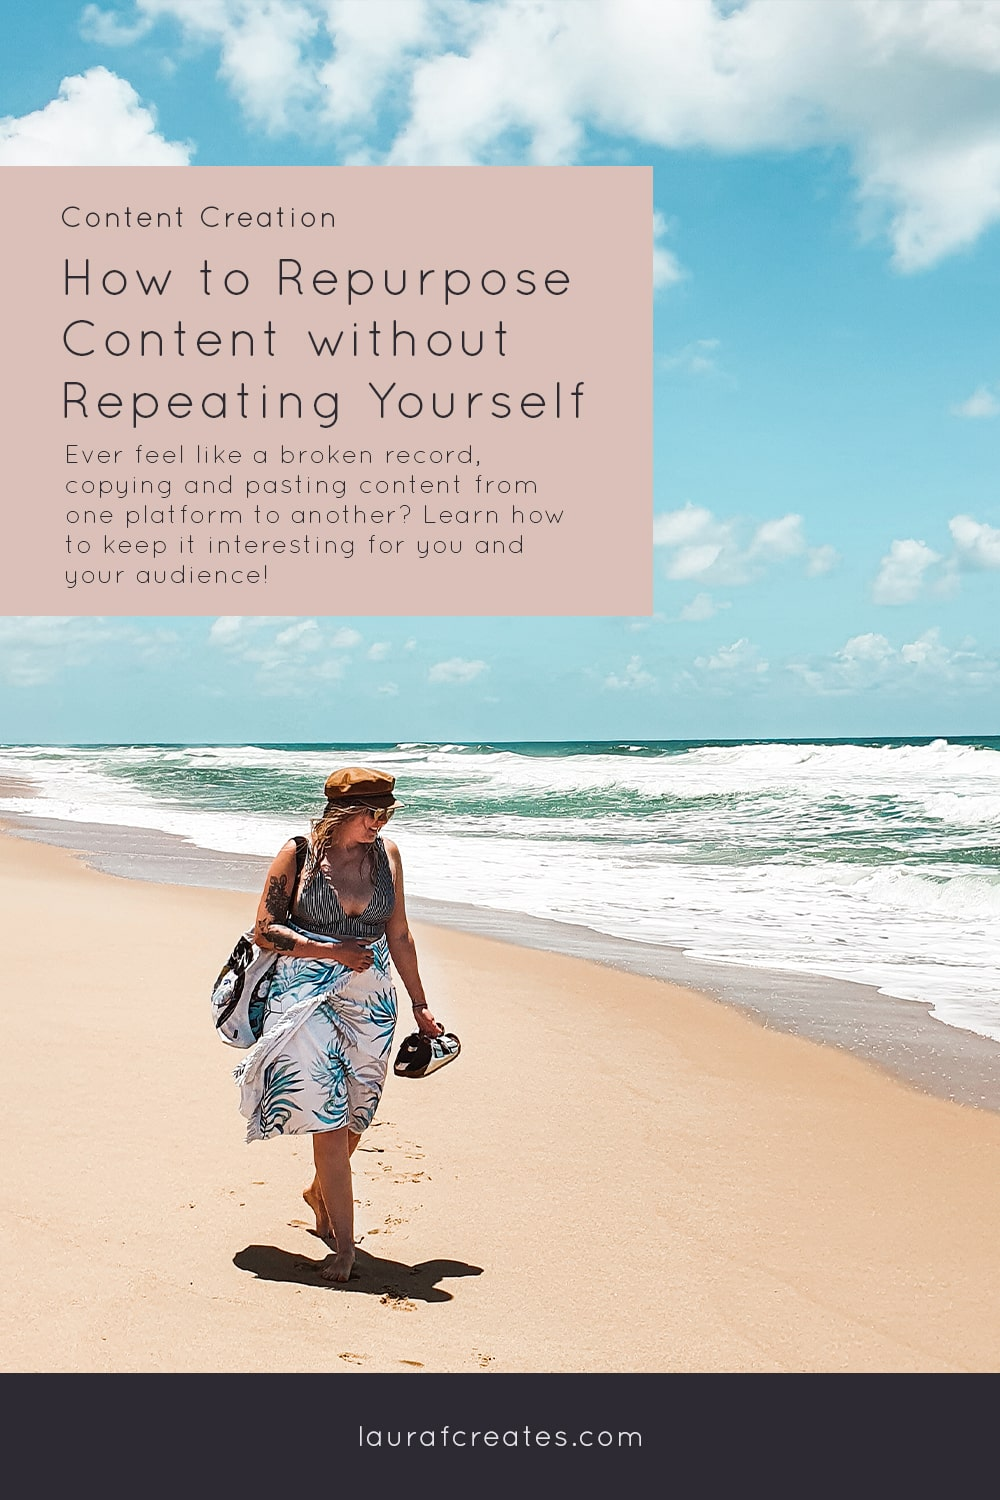 How to repurpose your content without repeating yourself